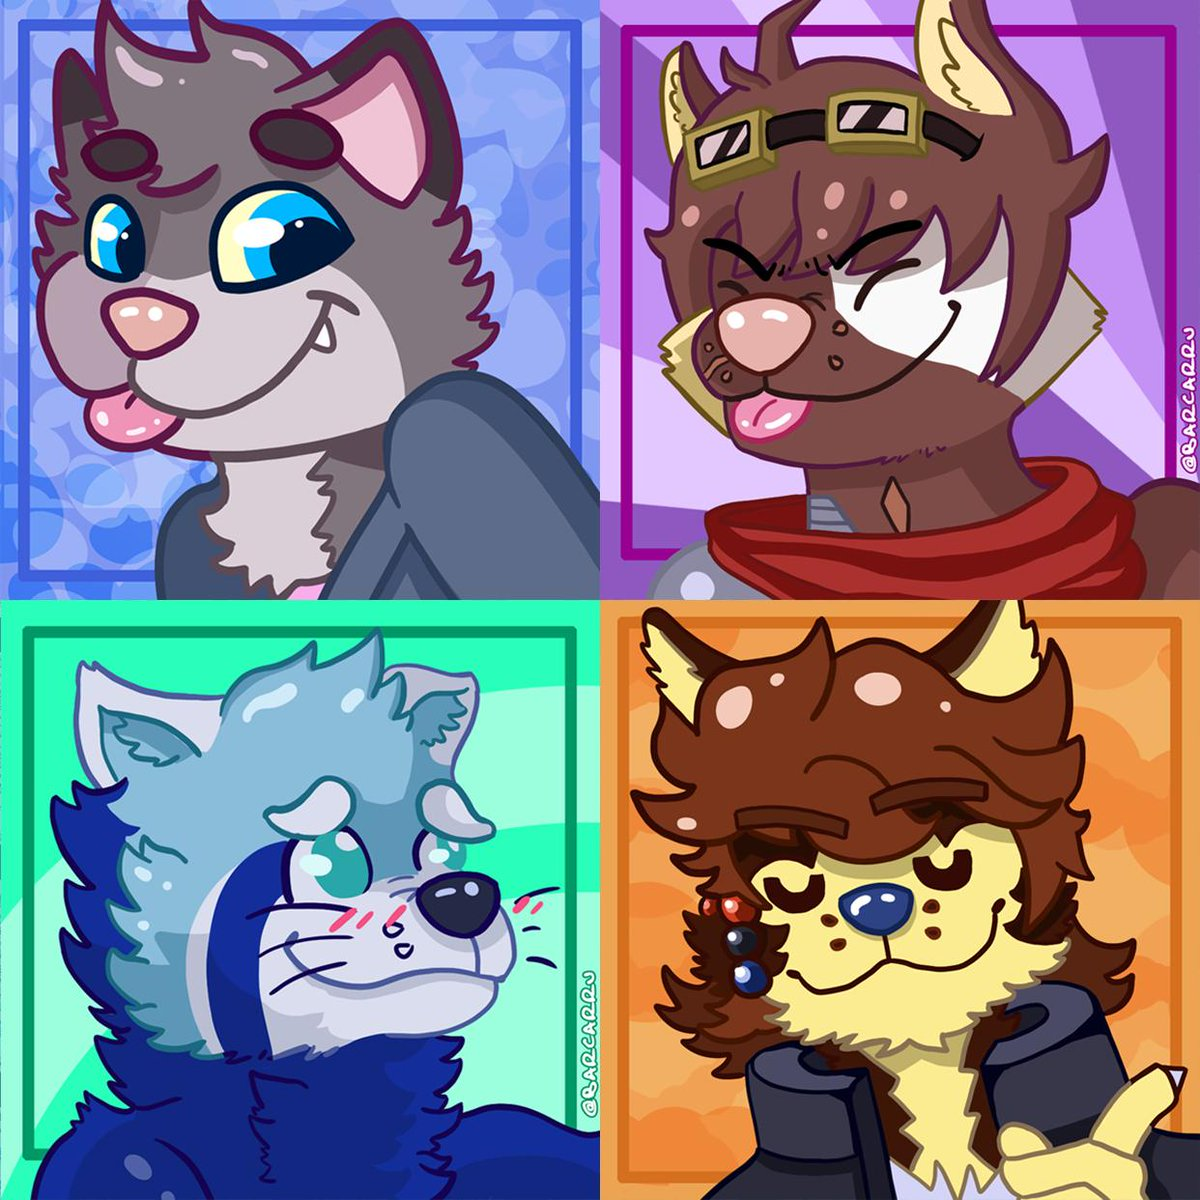 ART RAFFLE  #2!   PRIZES  - 1 FREE Flat icon (1st pic) - 1 FREE Full Paint Icon (2nd pic) - 50% OFF on a Full Illus (3rd pic)   To participate    Follow me! Retweet THIS TWEET!  Will announce 3 winners on April 1st!   #furry #furryart #raffle #freeraffle #icons<br>http://pic.twitter.com/V55cS5apPM